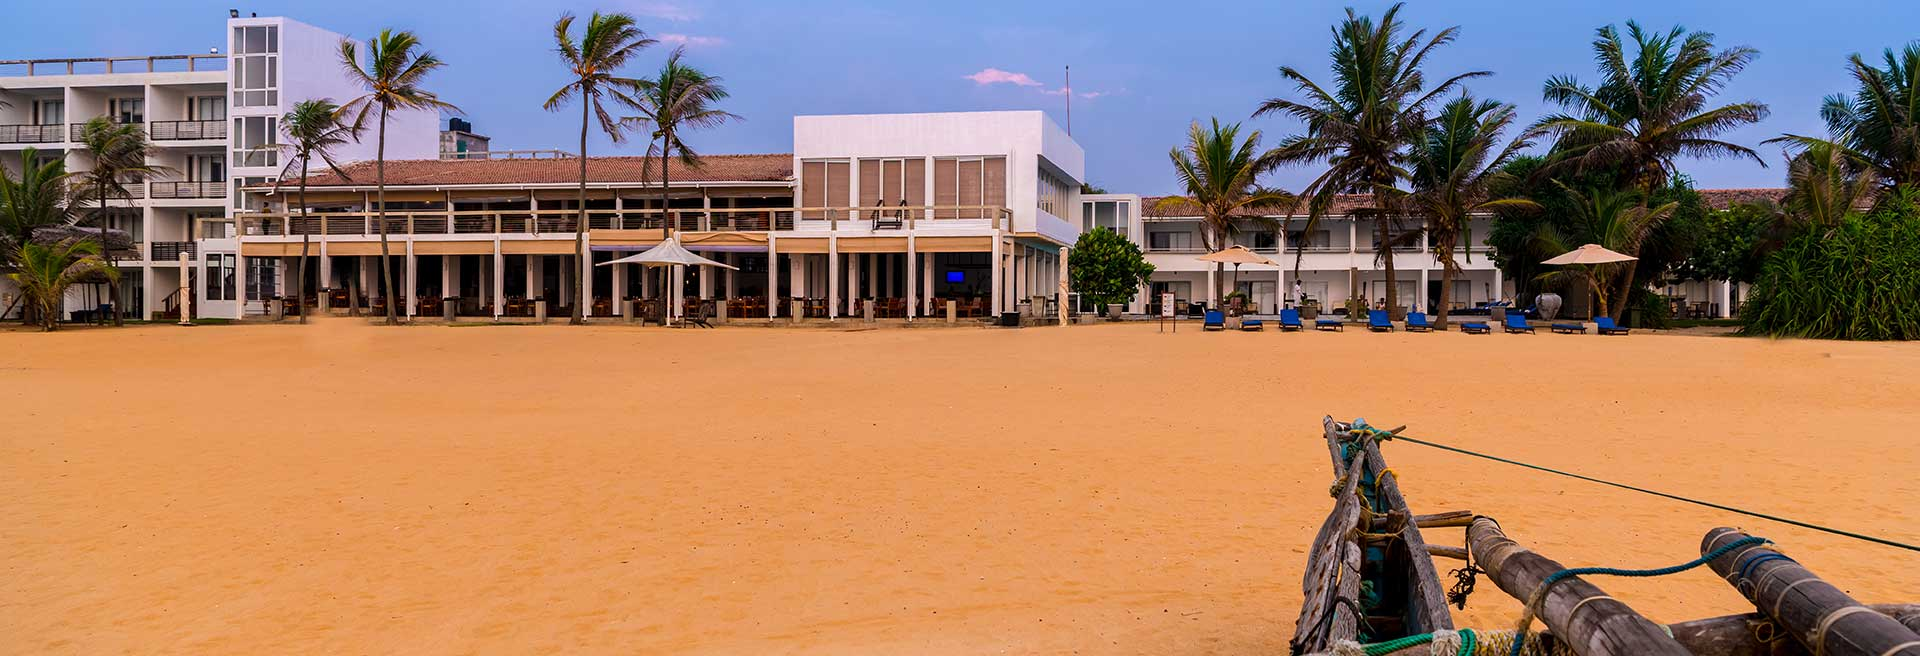 Hotel Exterior from the seashore